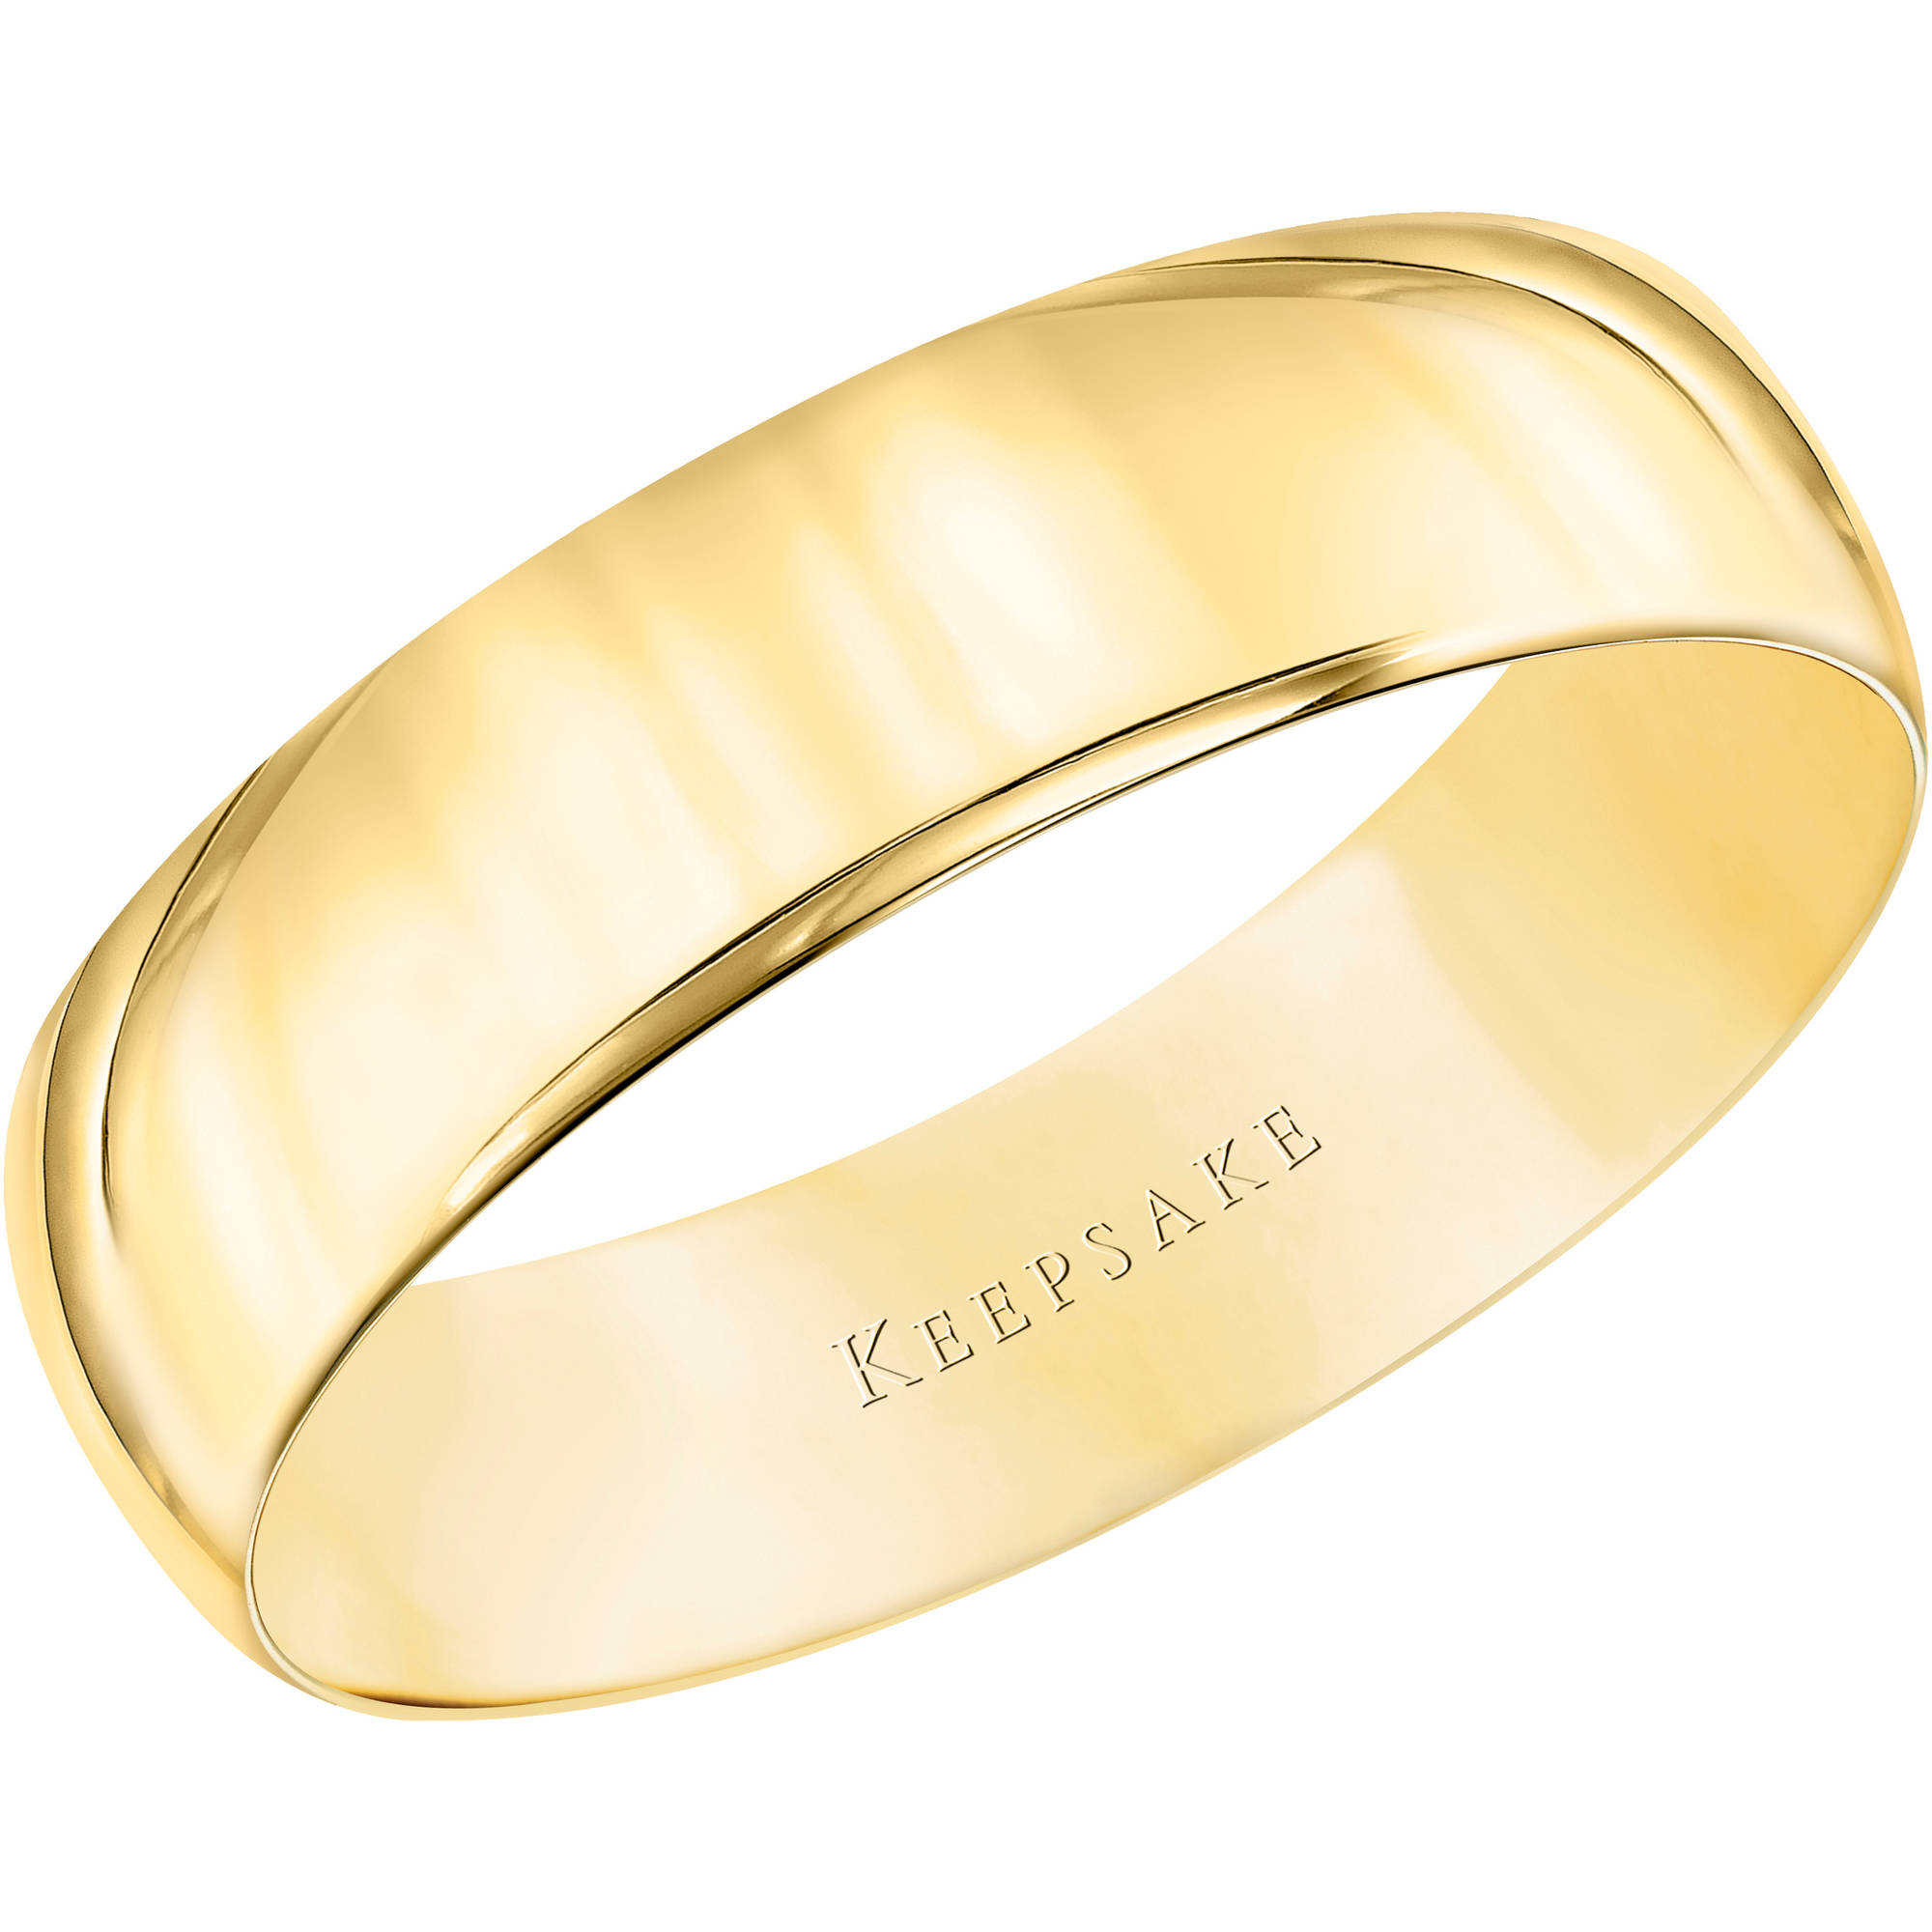 Men's Keepsake 10kt Yellow Gold Wedding Band With High-Polish Finish, 5mm